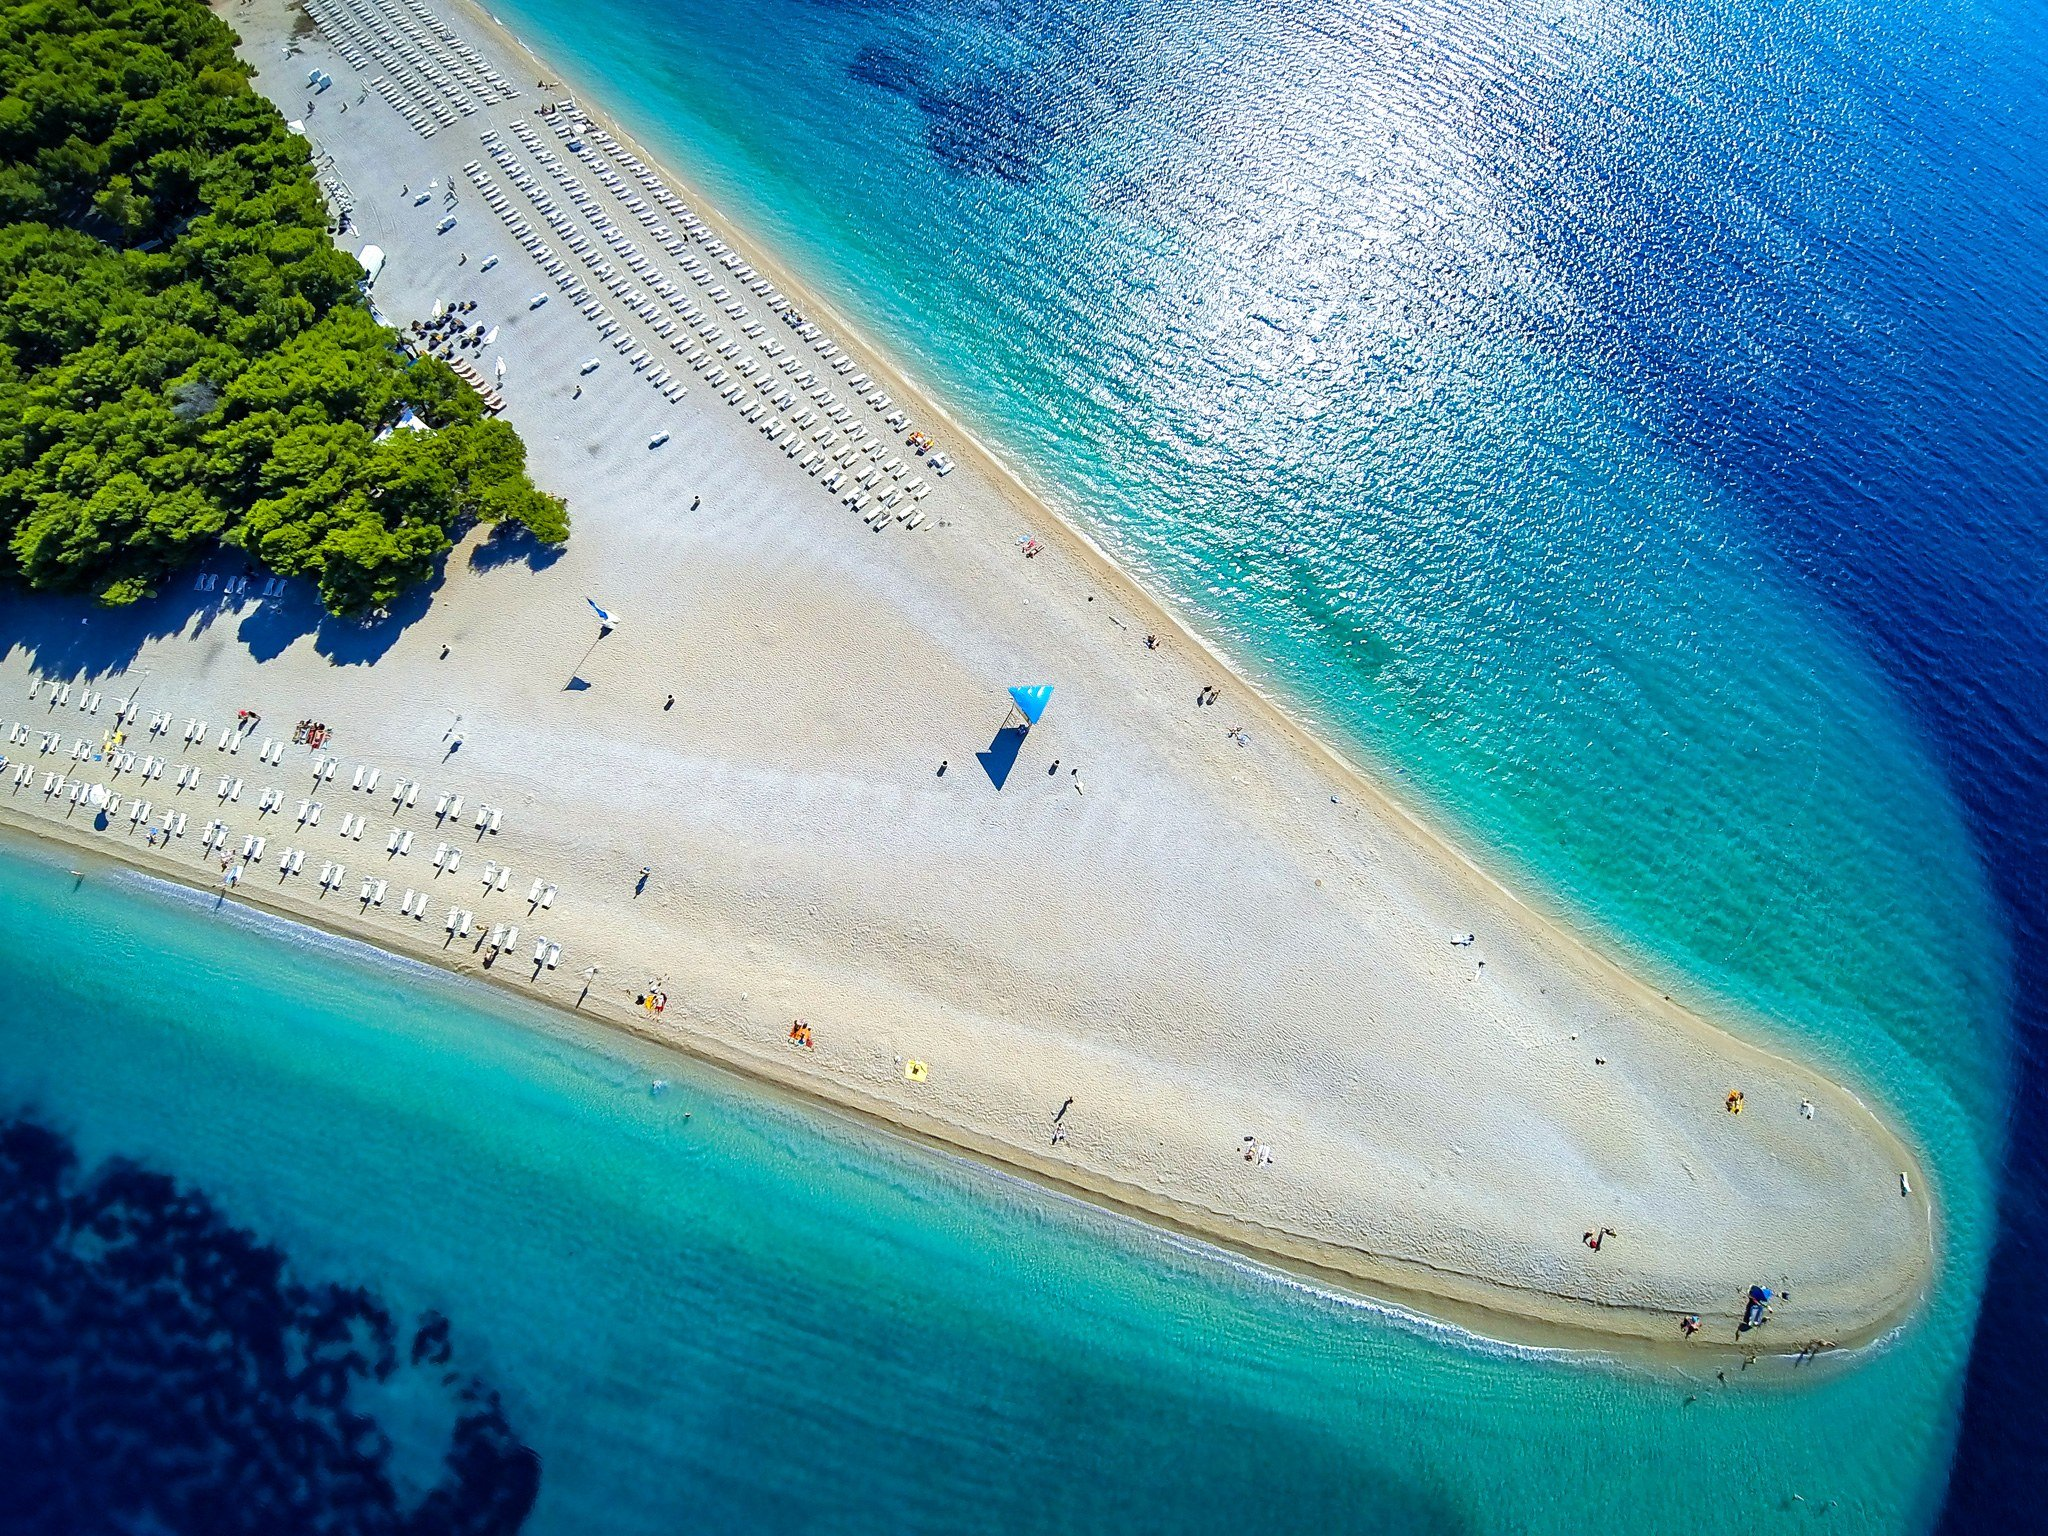 beaches-europe-Zlatni-rat-croatia-GettyImages-537453216